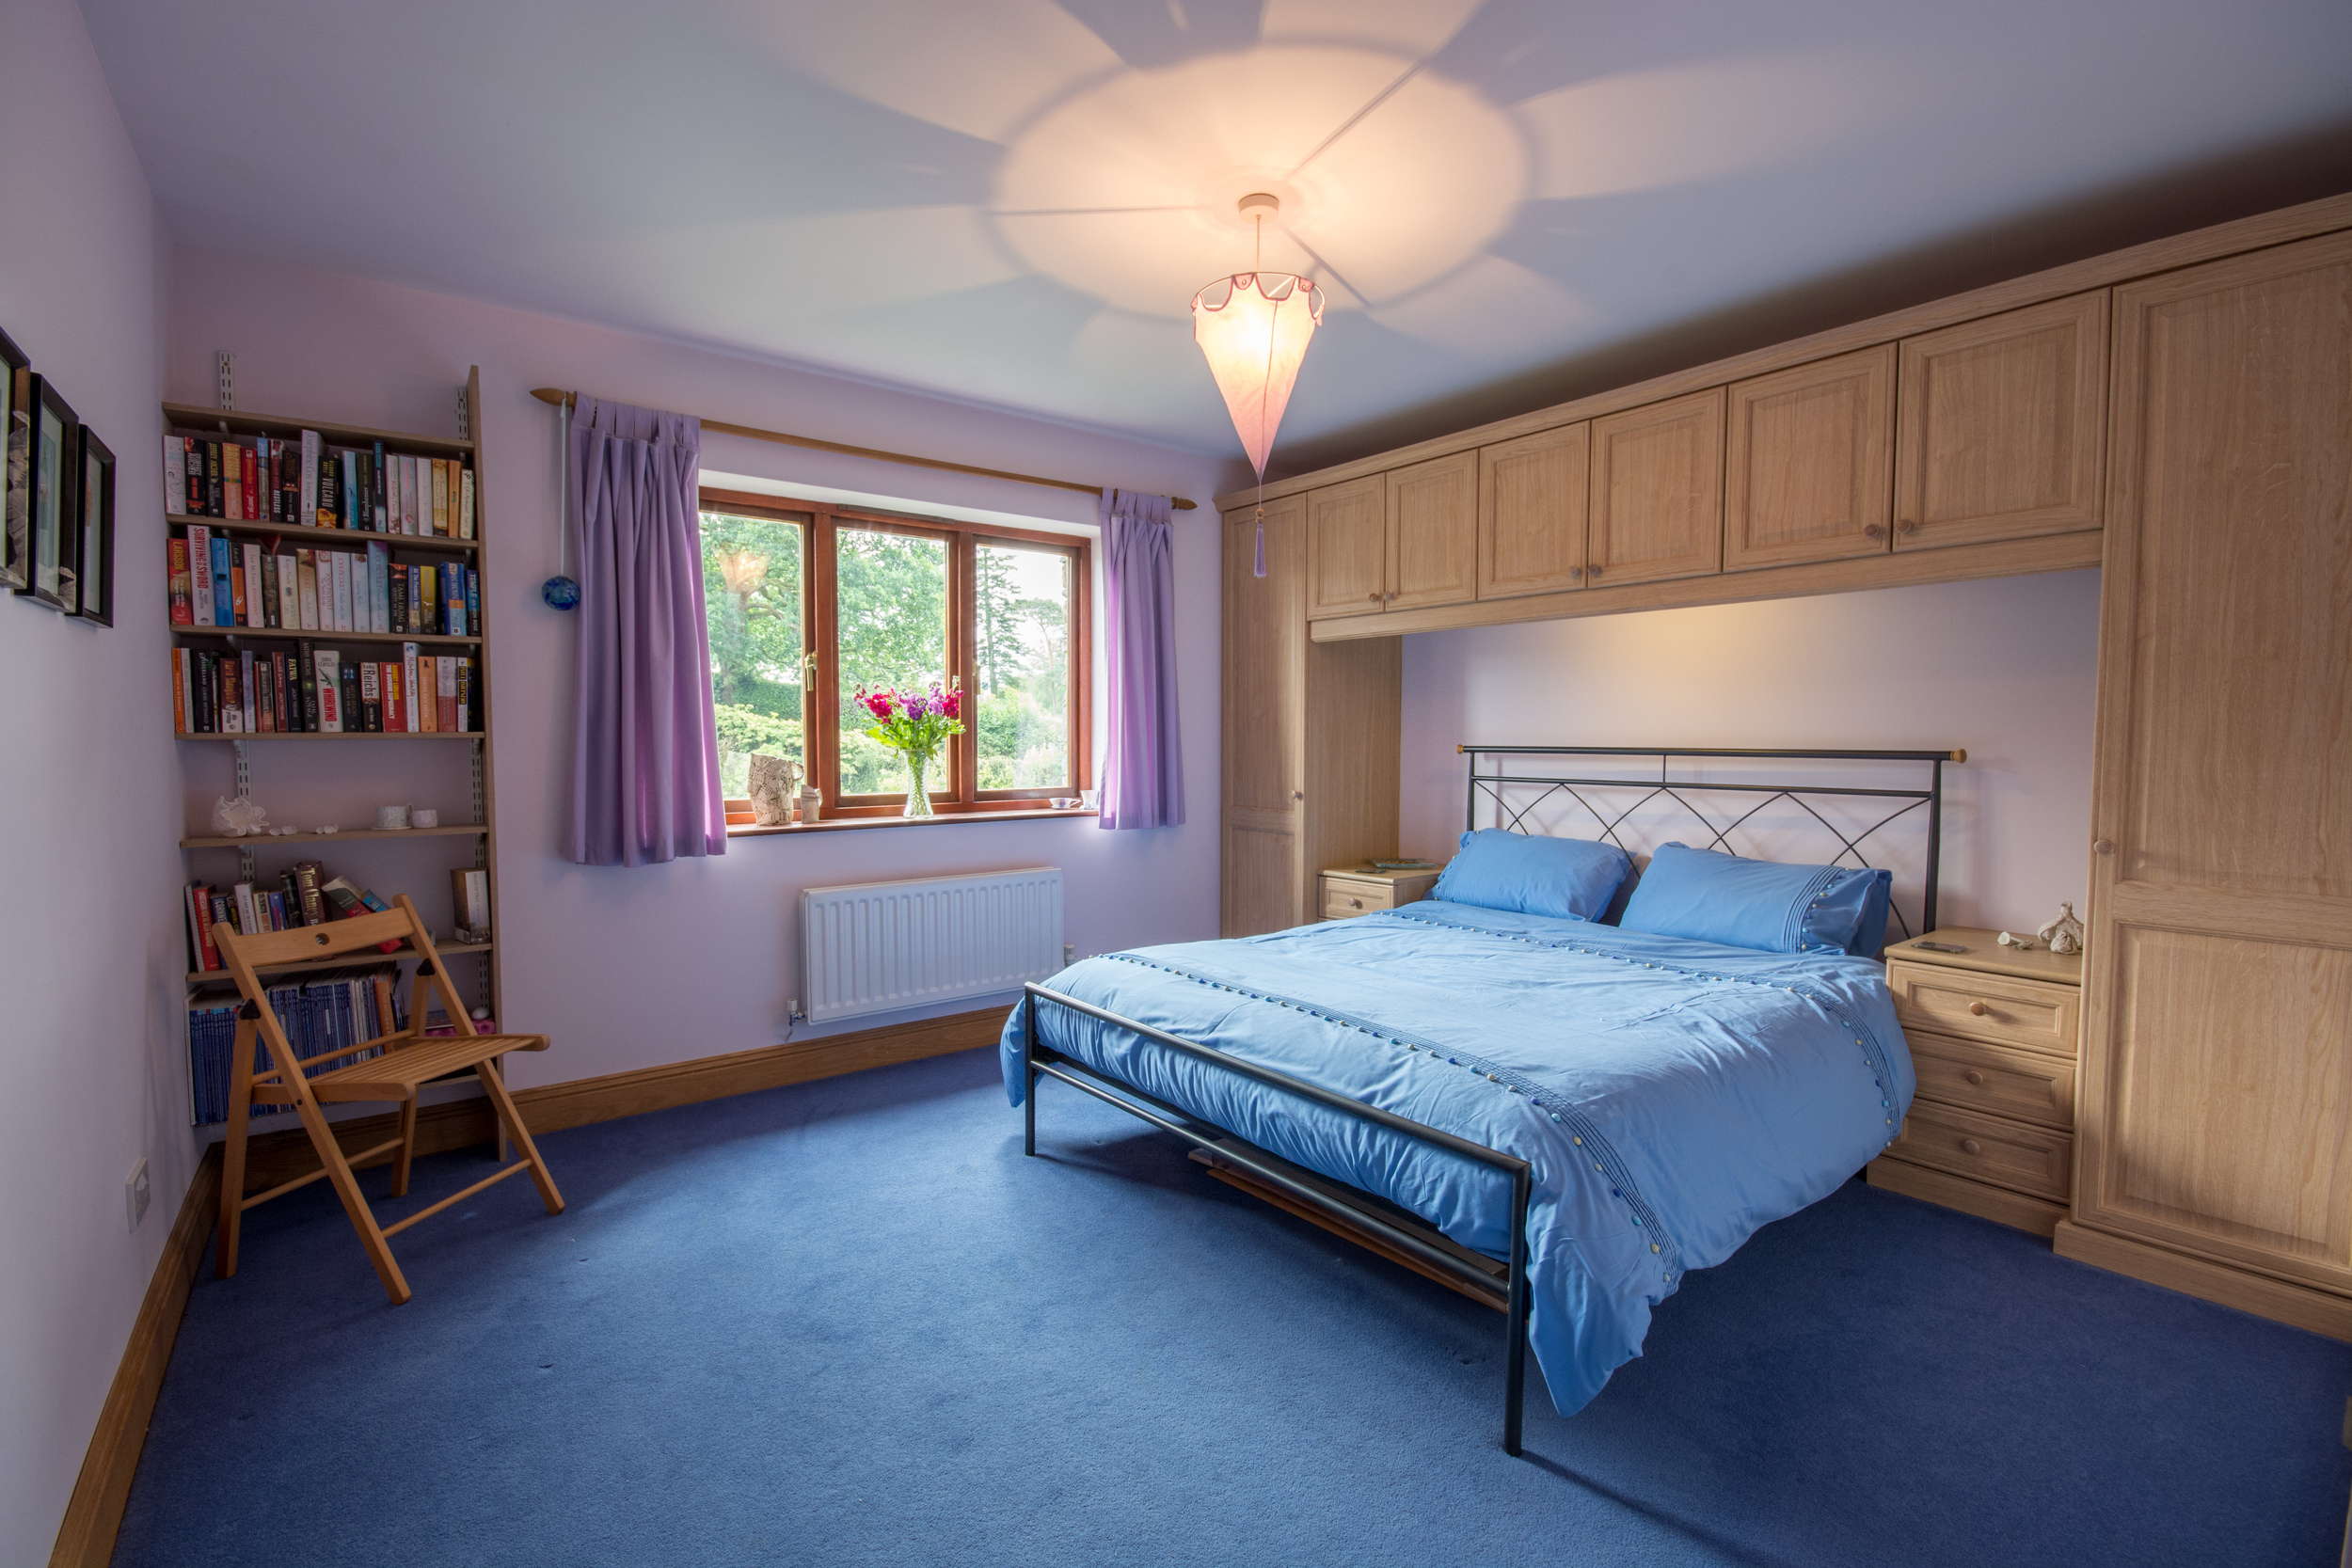 Double Bedroom 2 - Beech Nook Thornthwaite, Keswick Holidays Self Catering.jpg